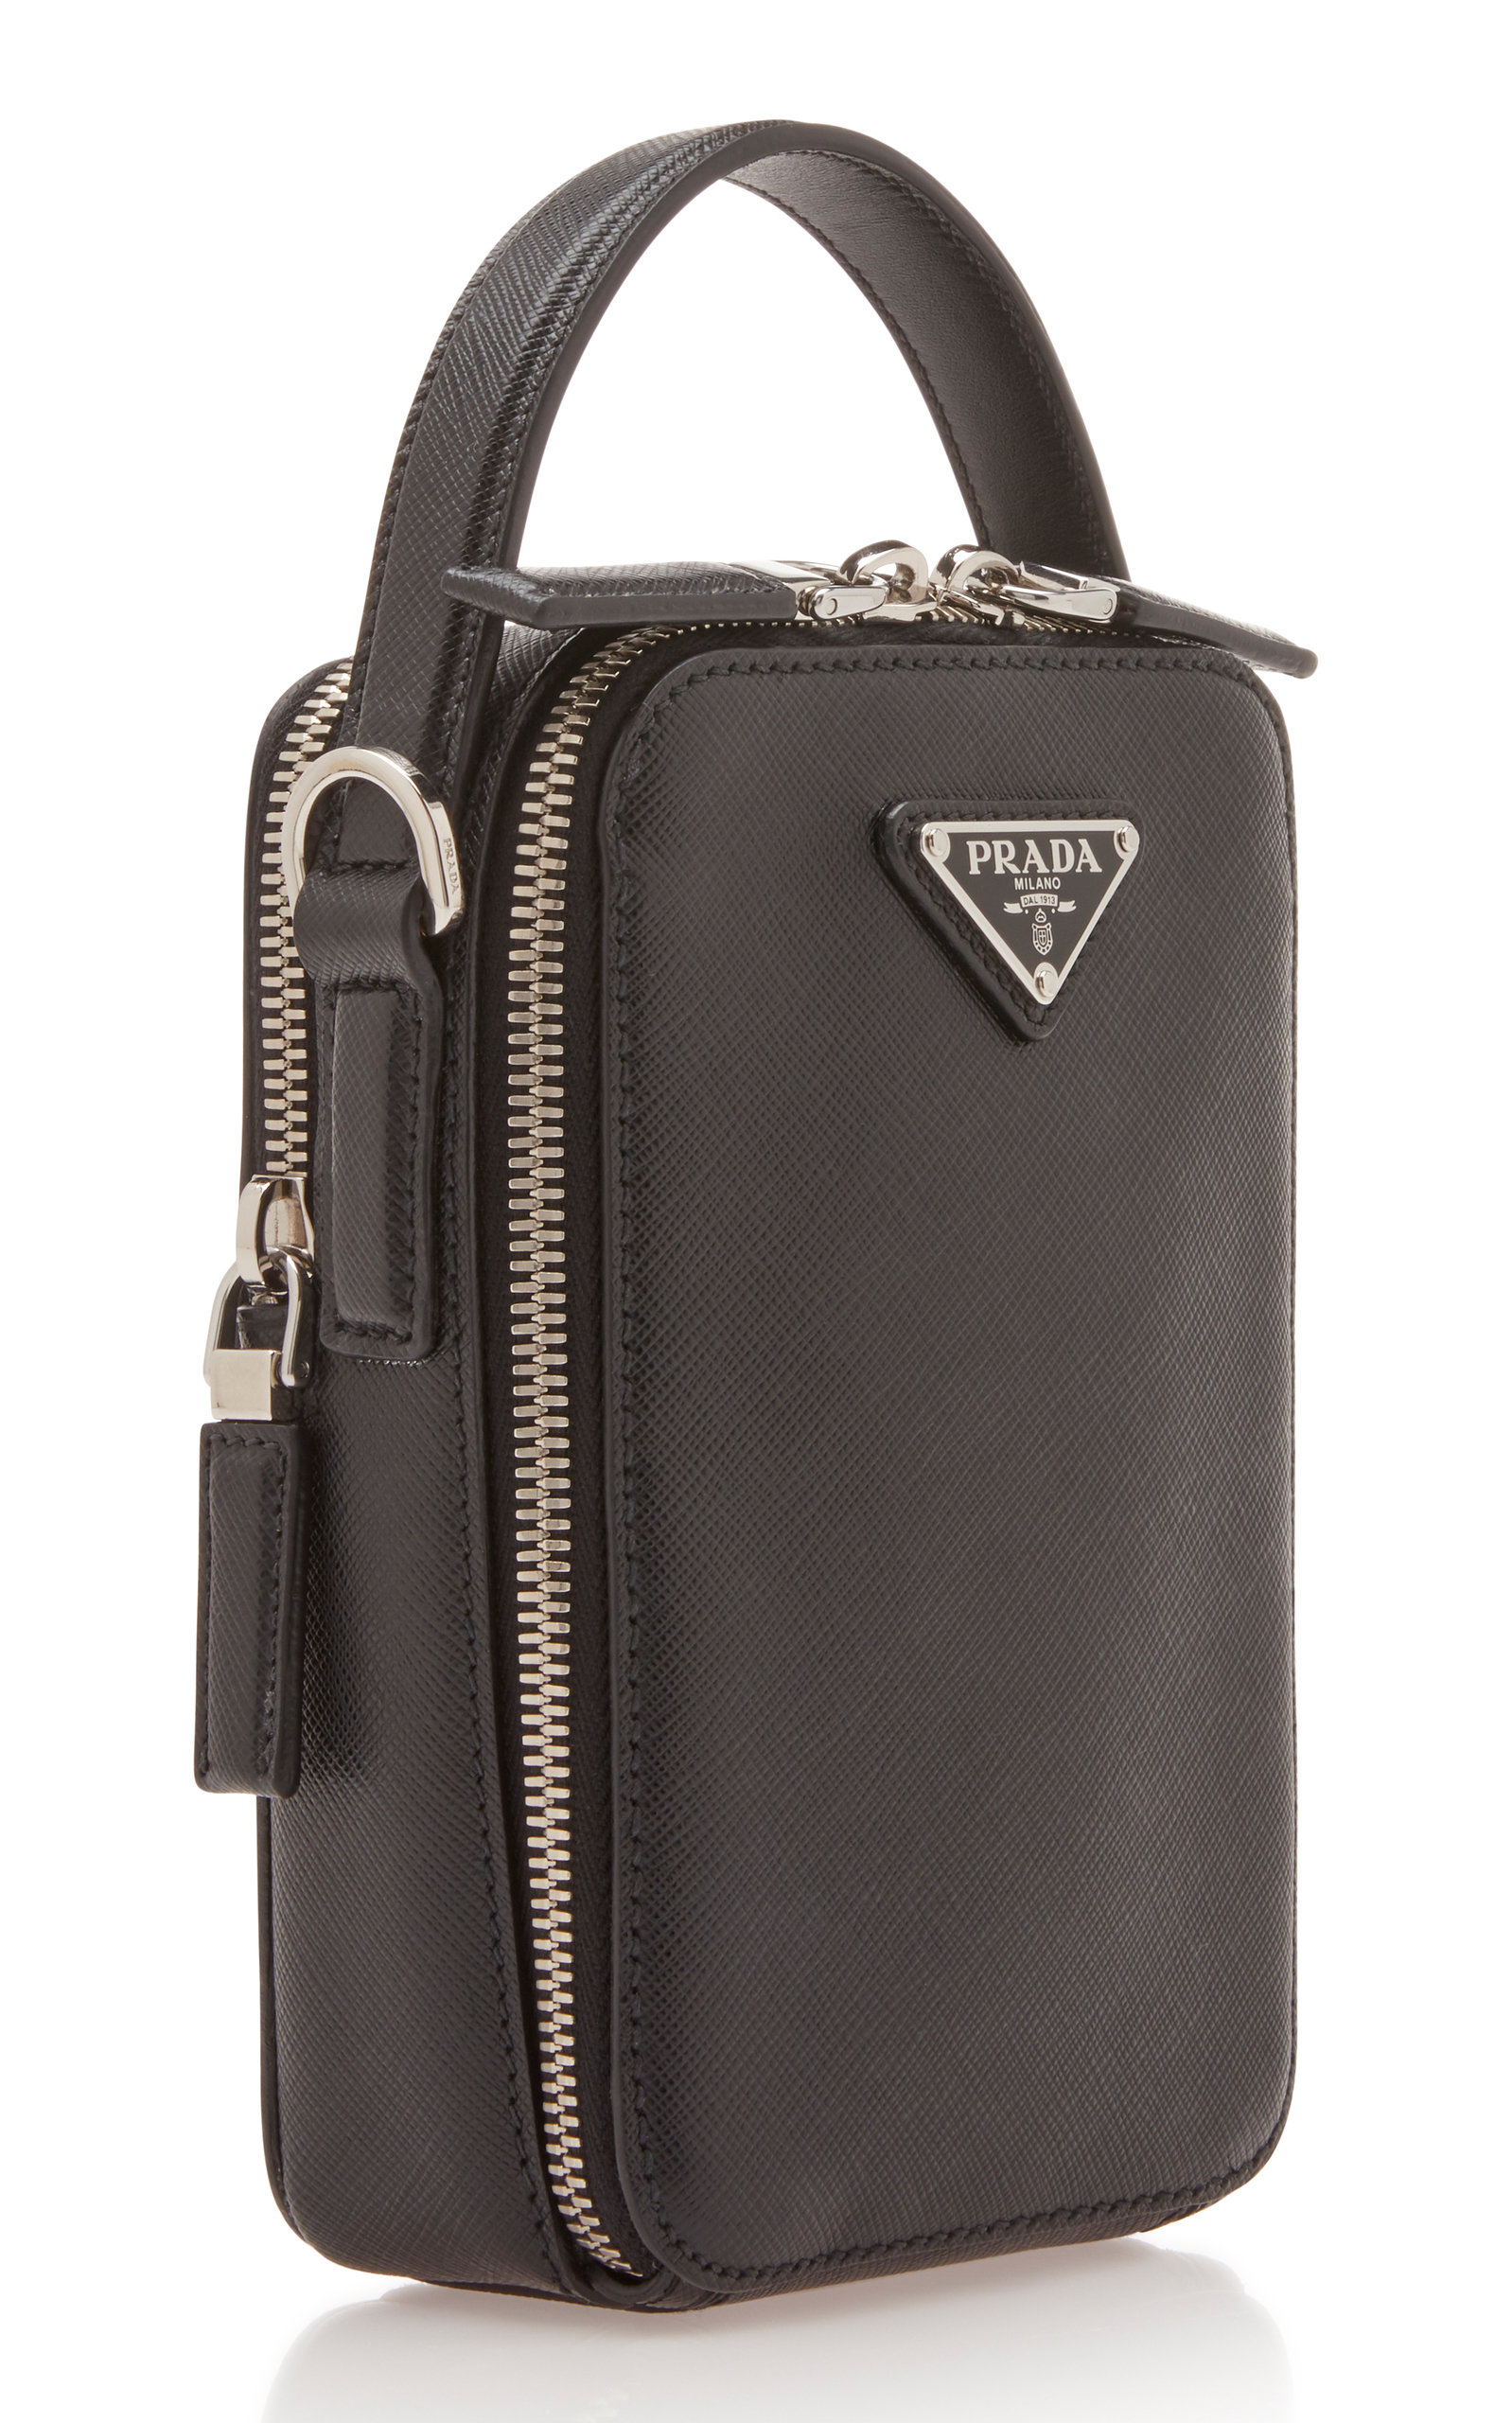 04918a29069b PradaDouble-Zip Leather Crossbody Bag. CLOSE. Loading. Loading. Loading